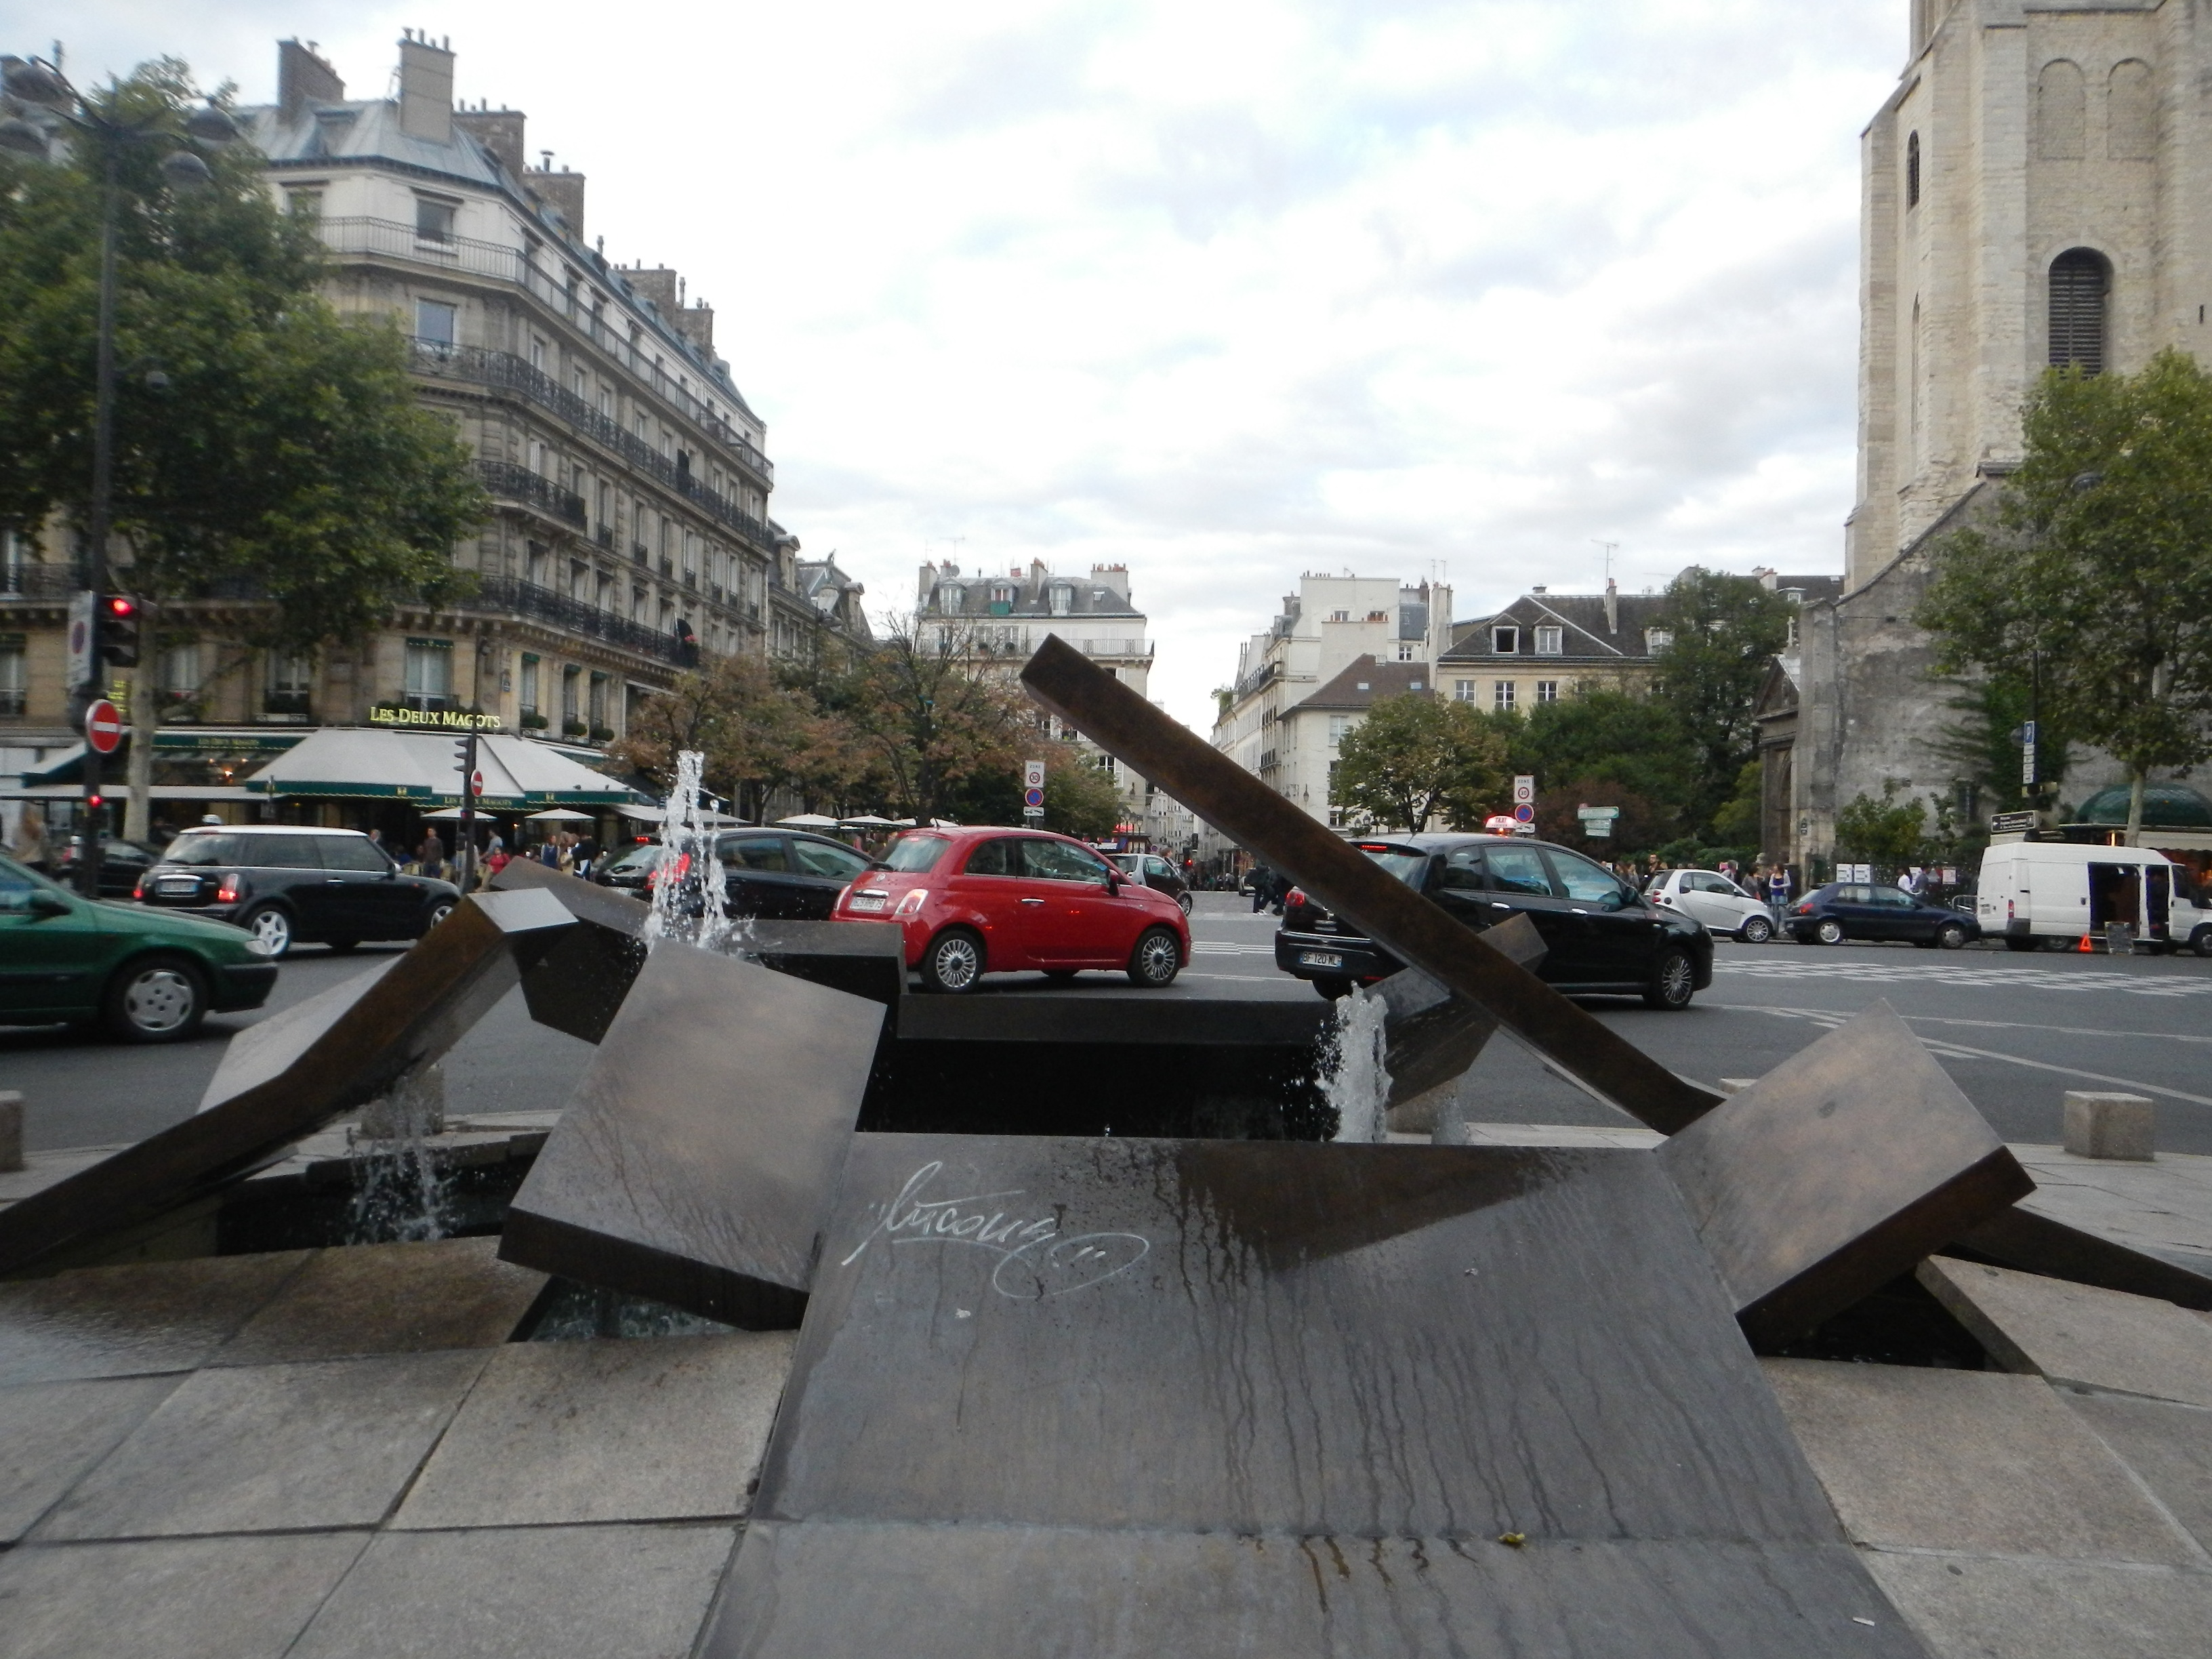 an interesting fountain in saint germain